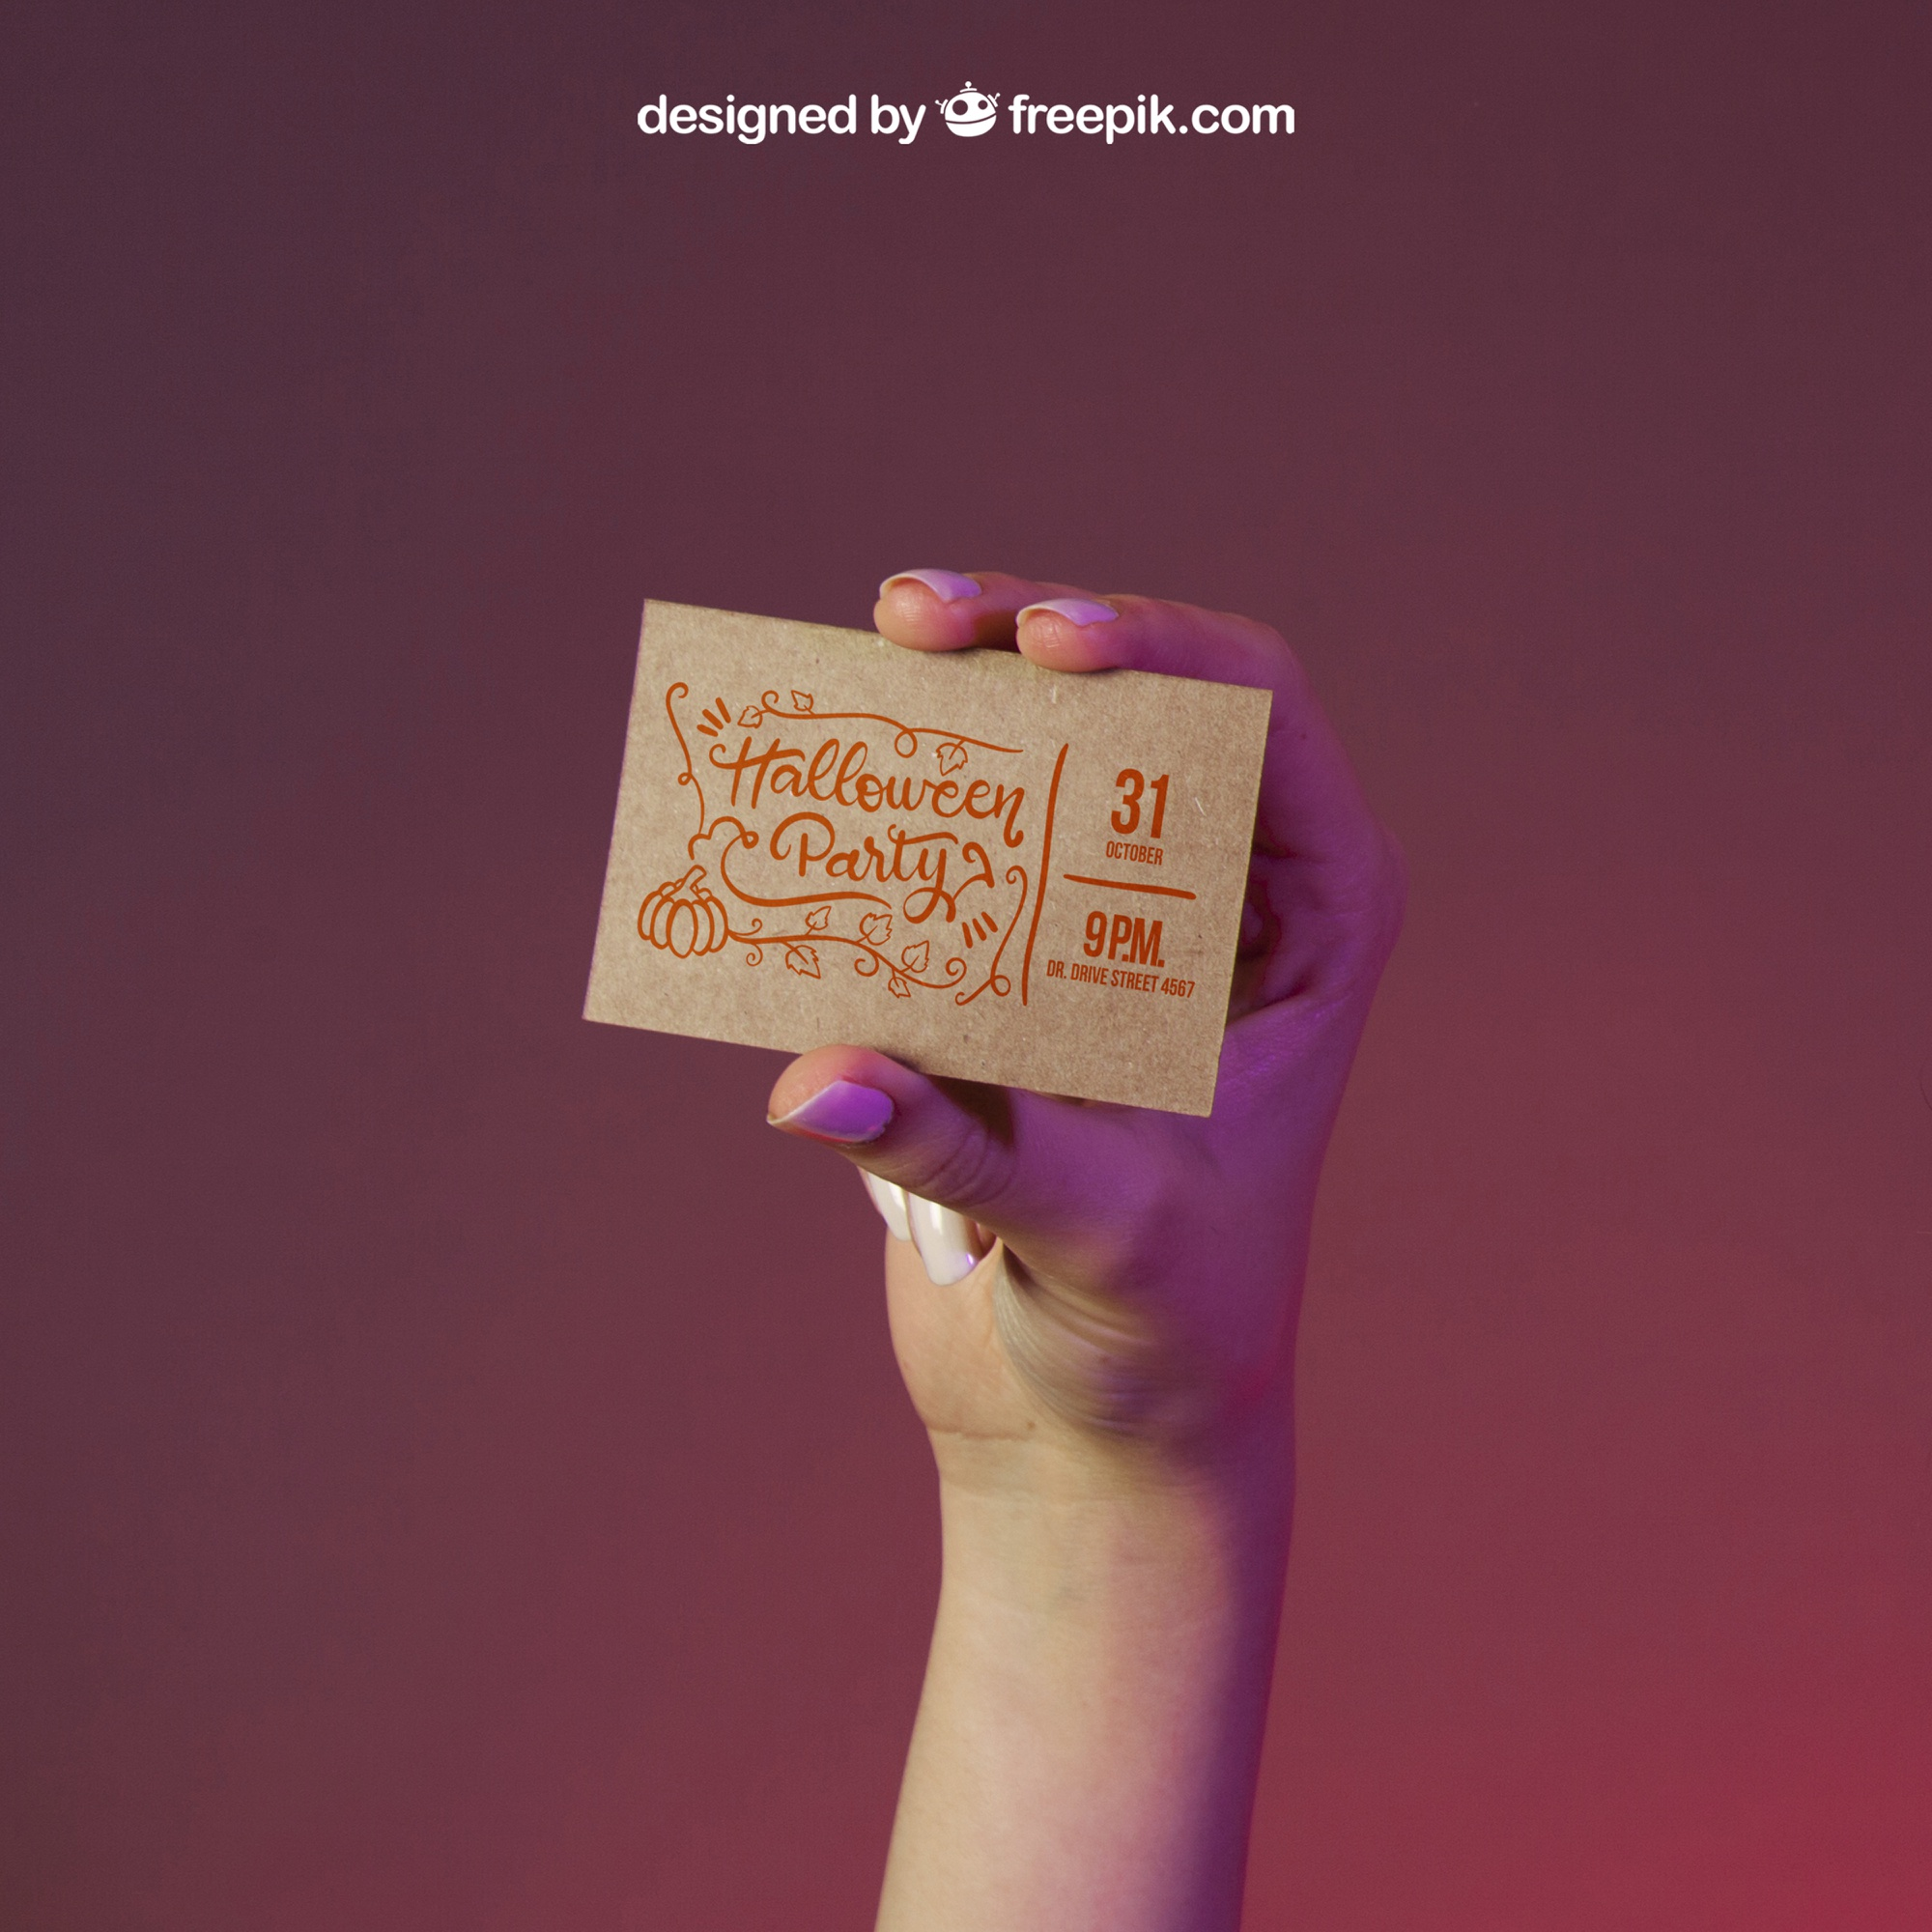 Halloween mockup with hand holding business card